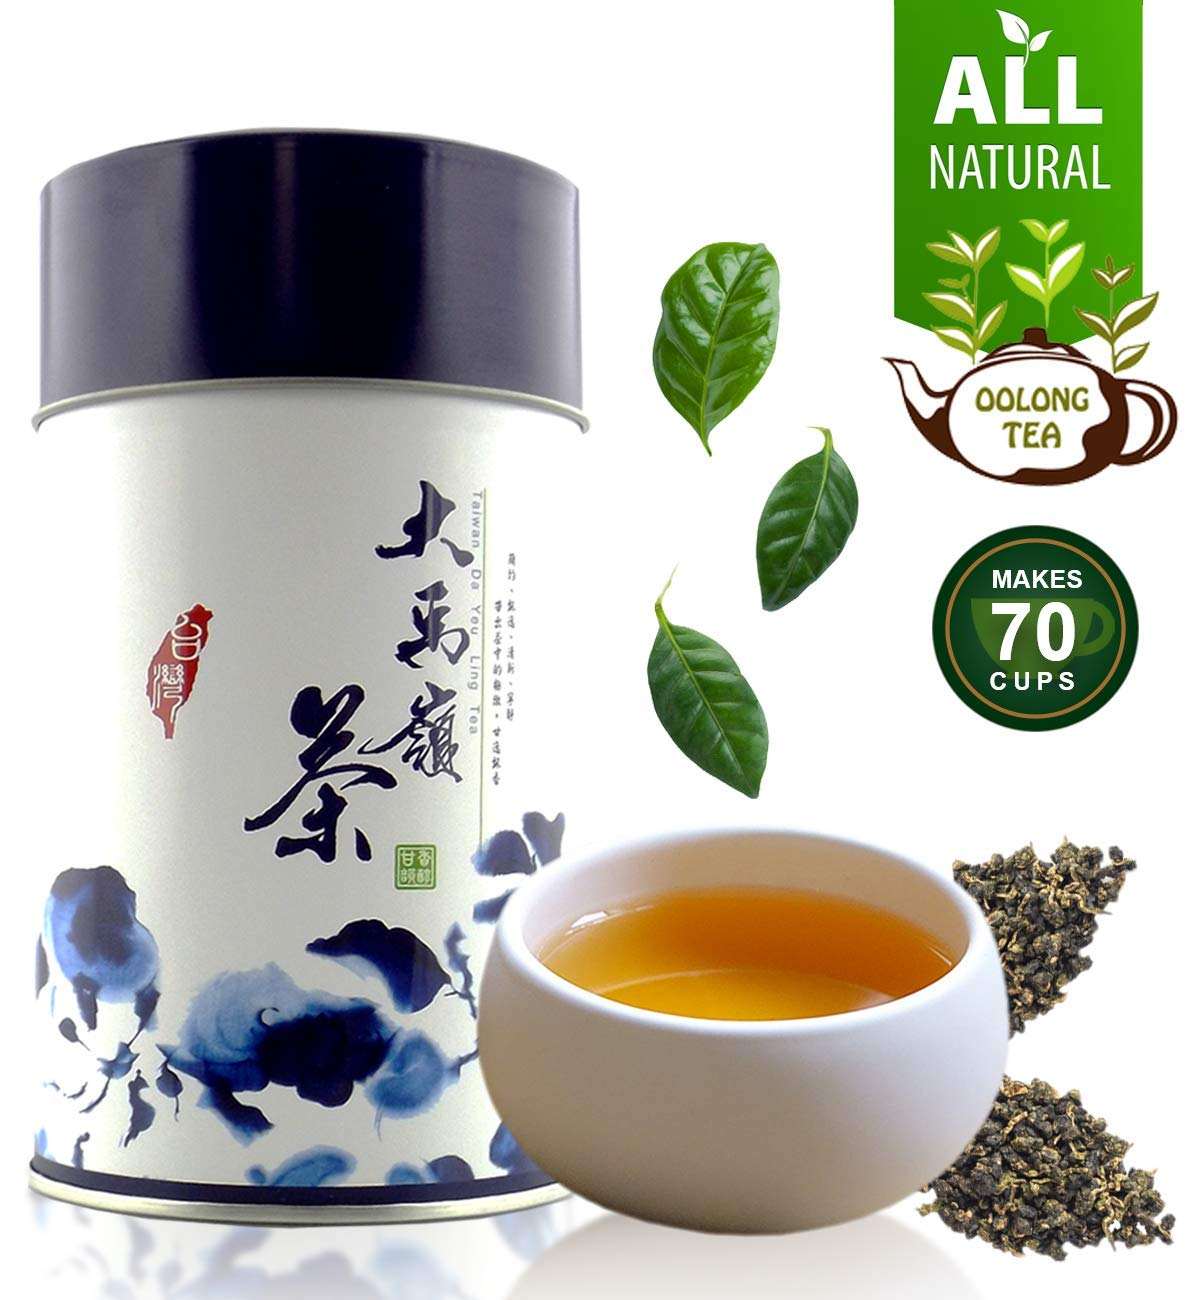 Oolong Tea Loose Leaf Hand-Picked from High Mountains Ali Shan Taiwan, Oolong Tea for Natural Detox, Improve Mental Functions, Boosts Metabolism, Helps in Weight Loss, 5.3oz Total, 2X Sealed Bags Oolong Tea by zone365